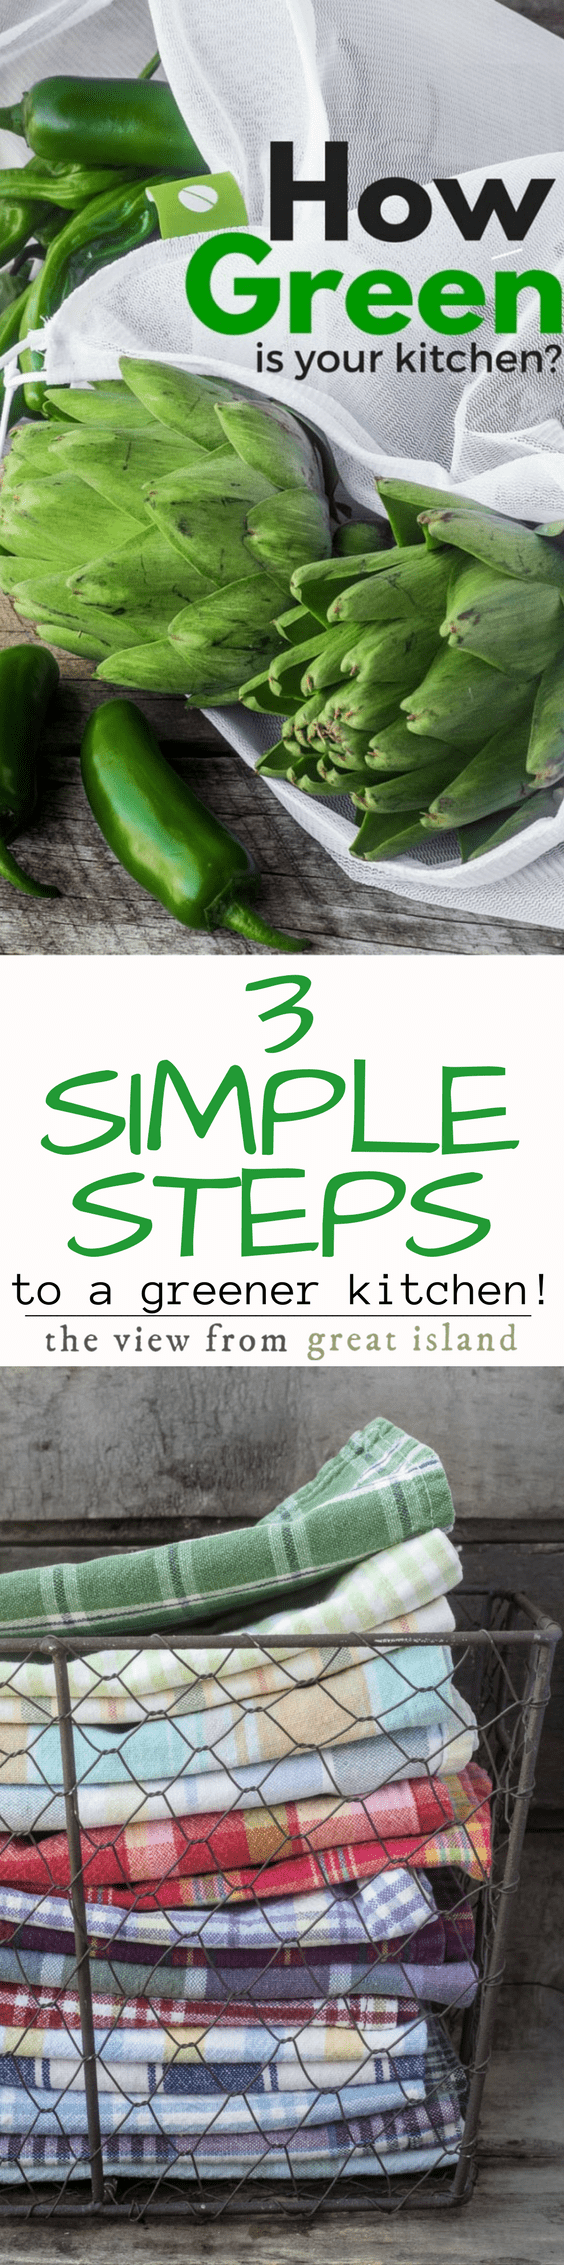 It's one thing to want a healthier, greener kitchen, but it's another to actually make it happen…the trick is to take it in small, manageable steps… here are my top 3 tips for getting started…